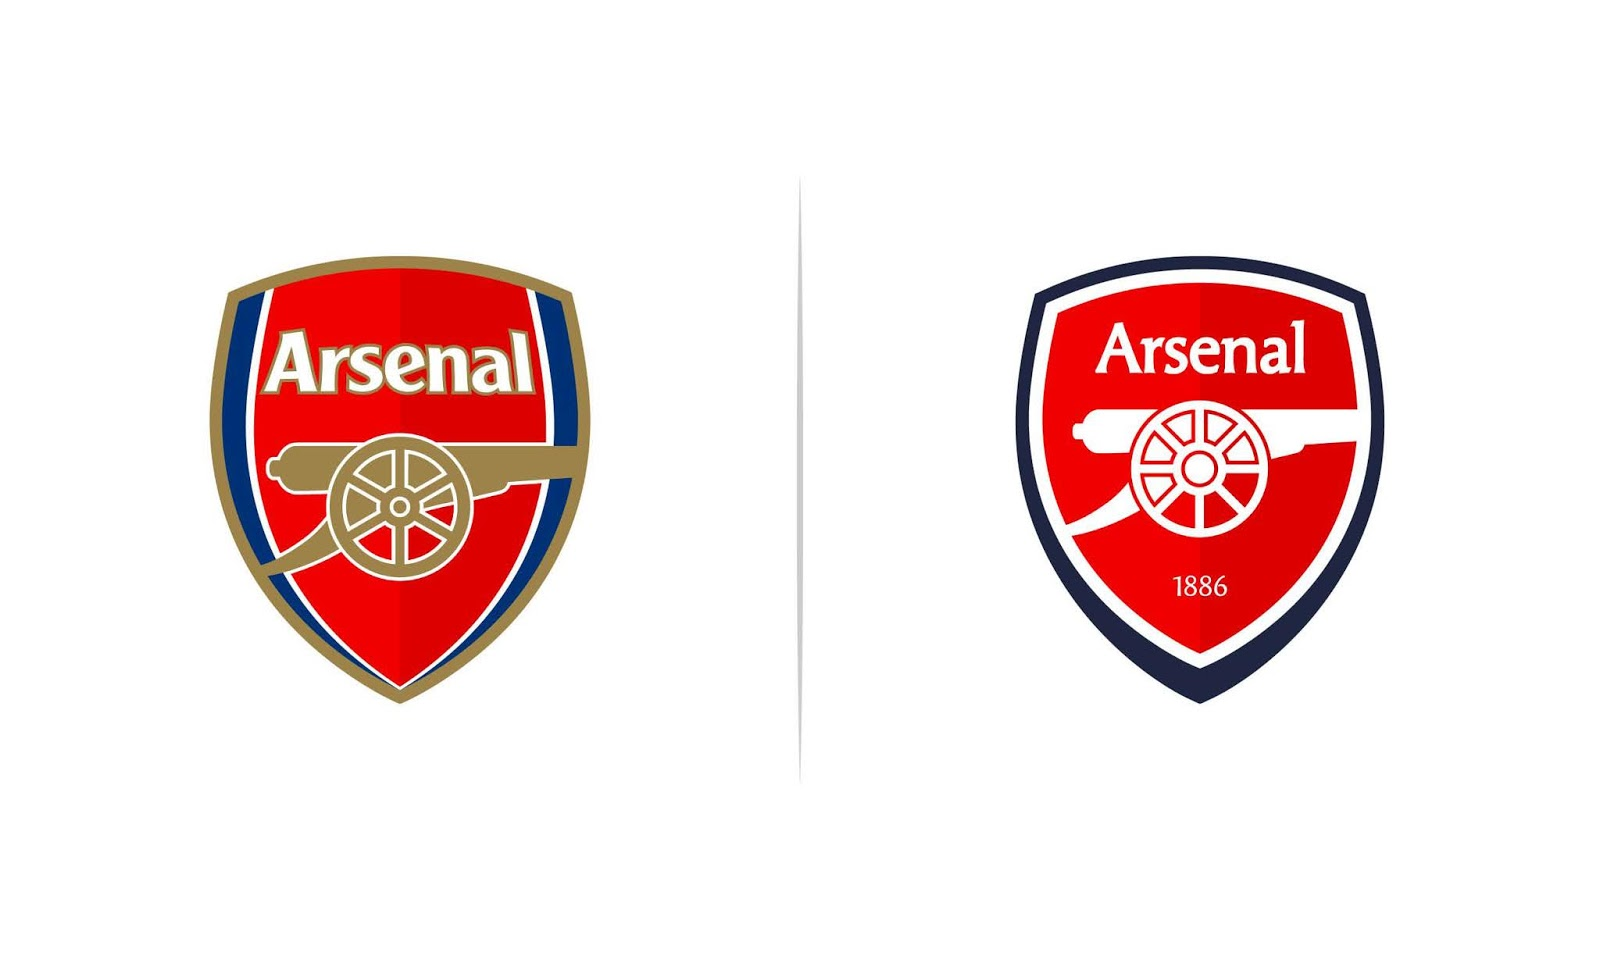 222f8c7c3d0 Redesigned Arsenal Logo by socceredesign - Footy Headlines